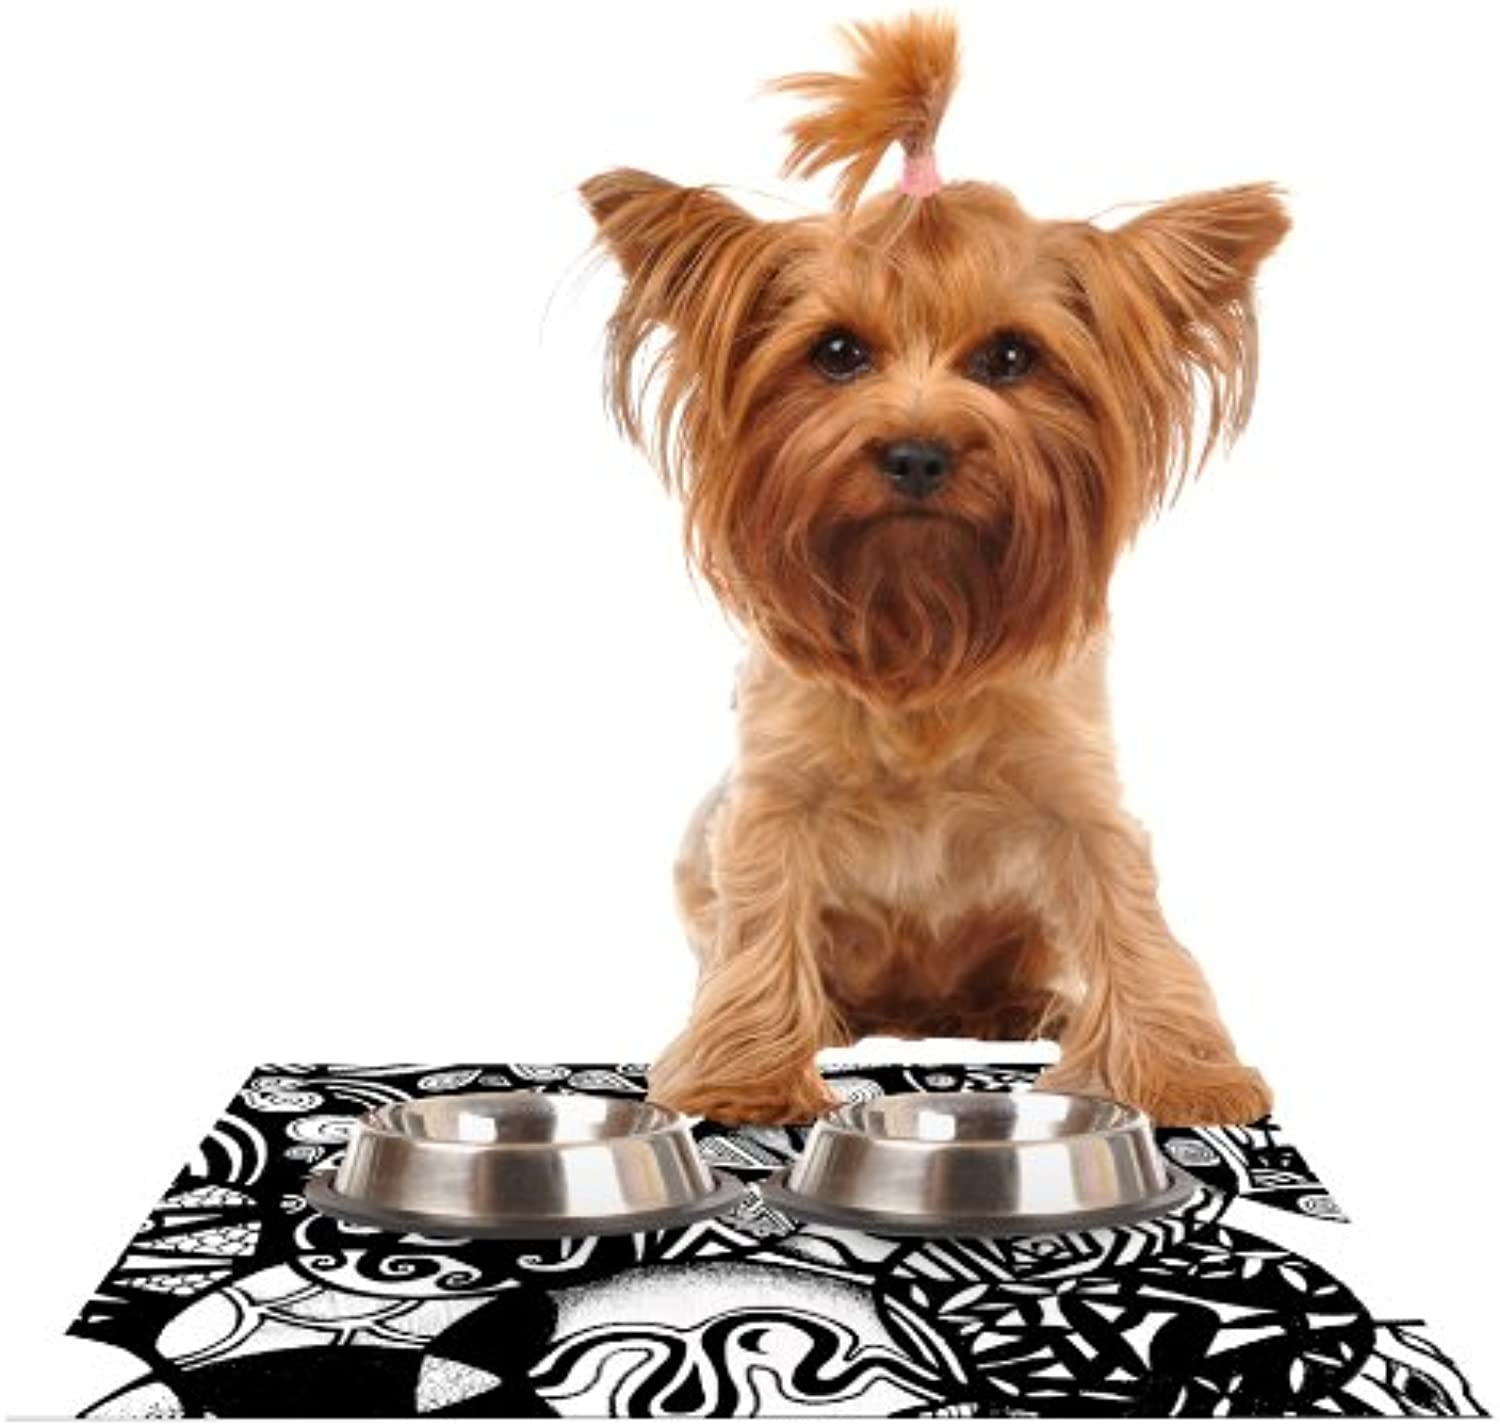 Kess InHouse Pom Graphic Design Circles and Life  Feeding Mat for Pet Bowl, 18 by 13Inch